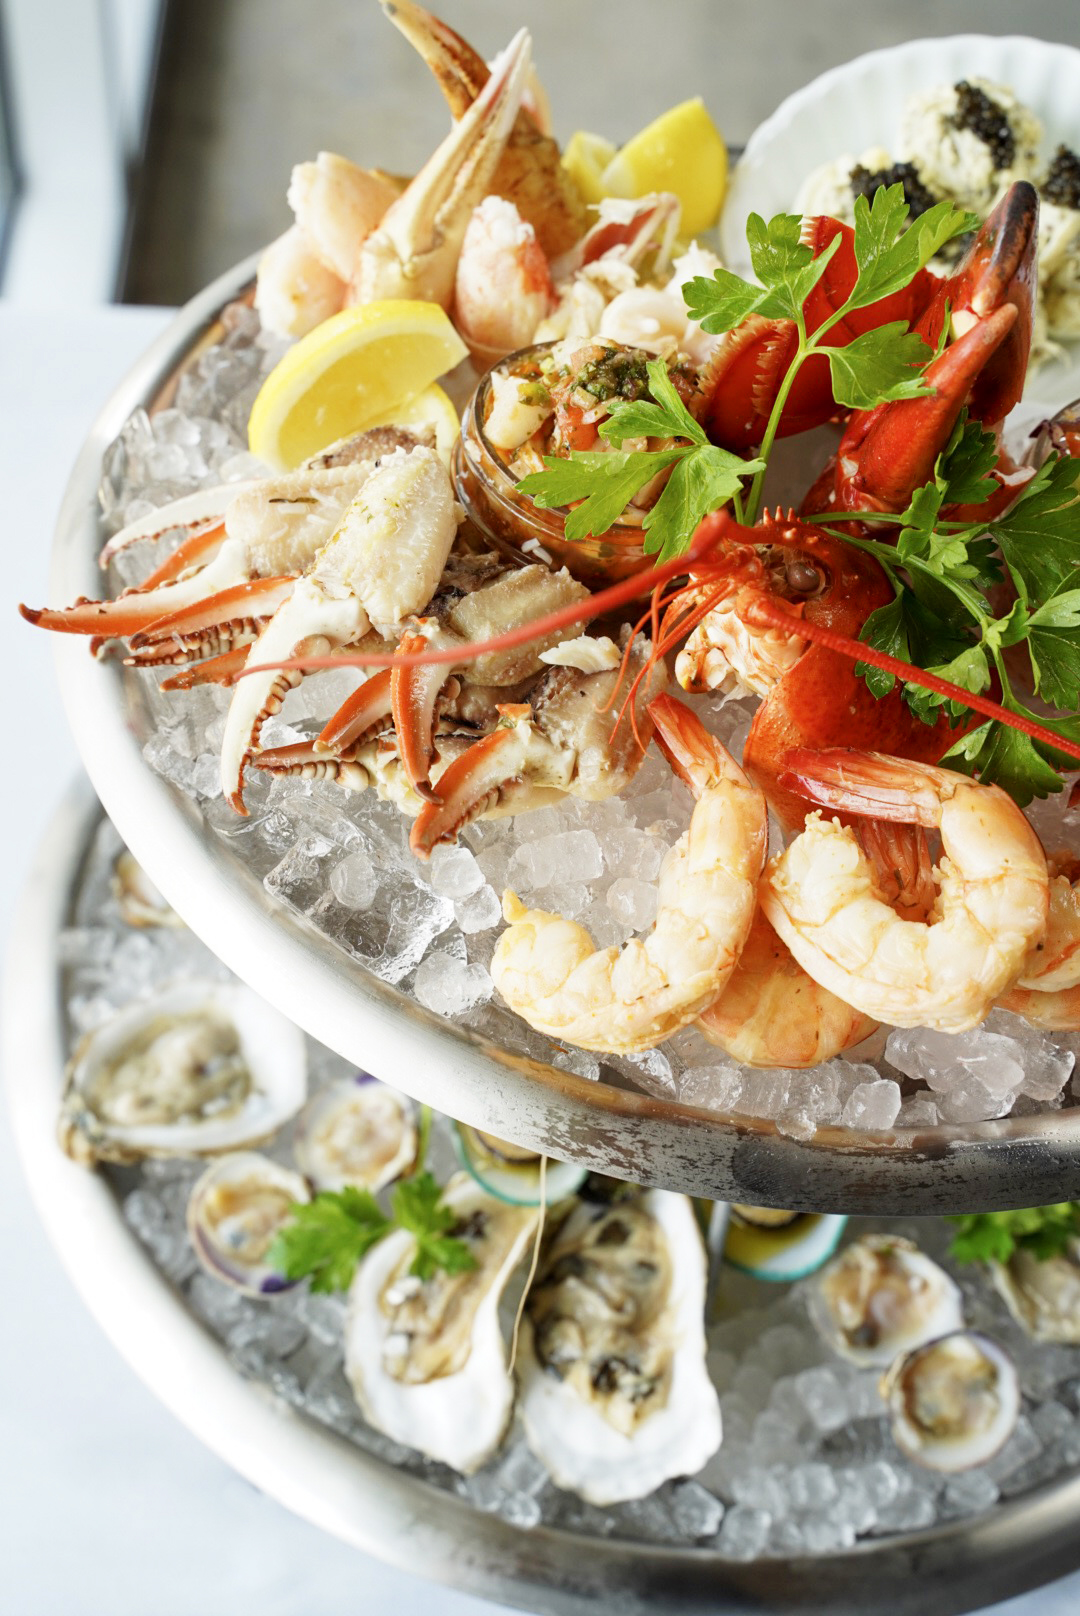 Seafood tower with shrimp and crab